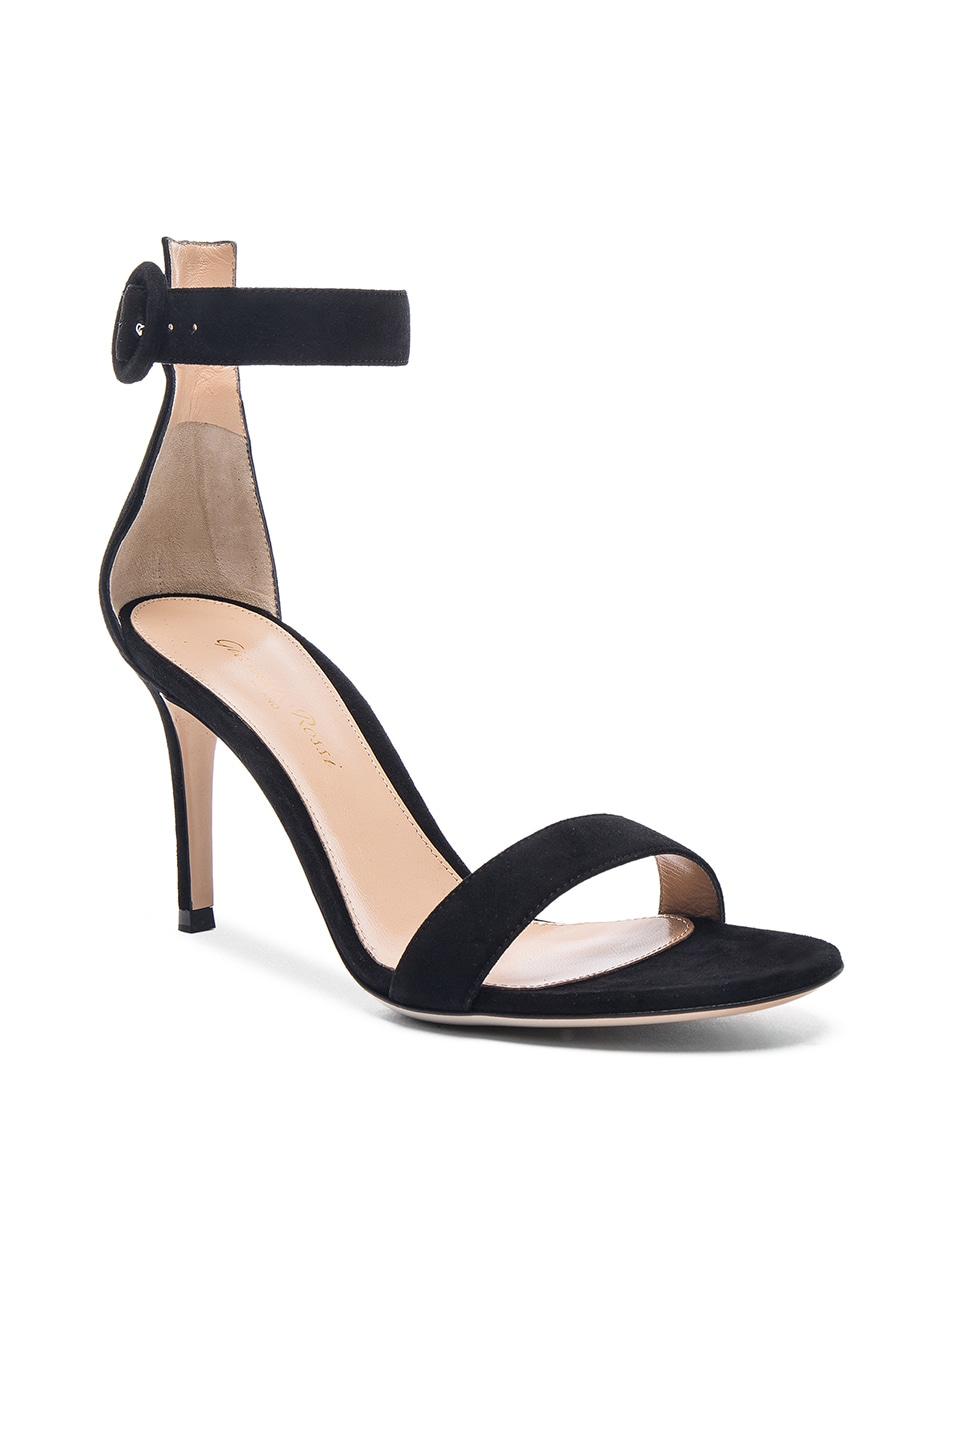 Image 2 of Gianvito Rossi Suede Portofino Heels in Black